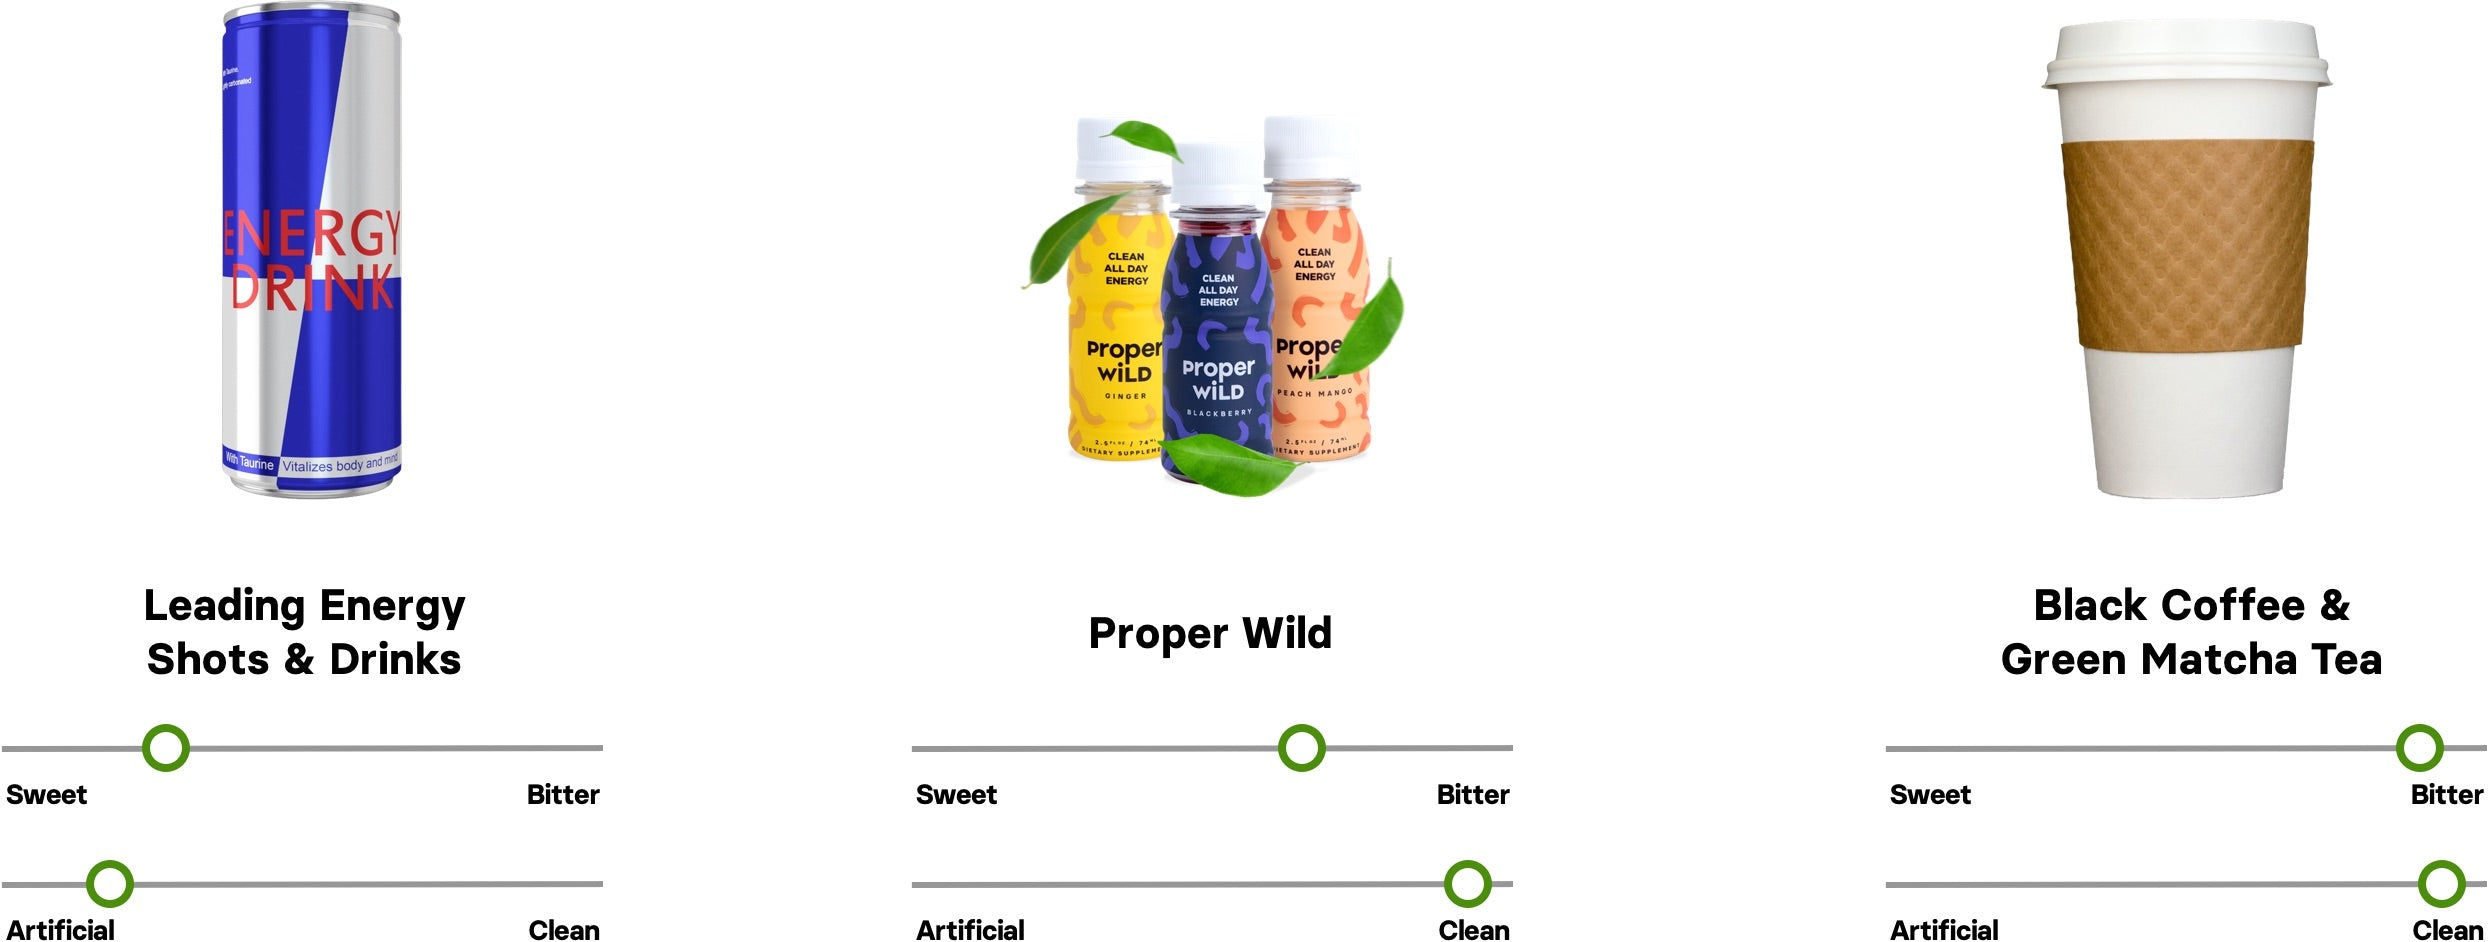 Proper Wild tastes more natural than energy drinks and is less bitter than black coffee.